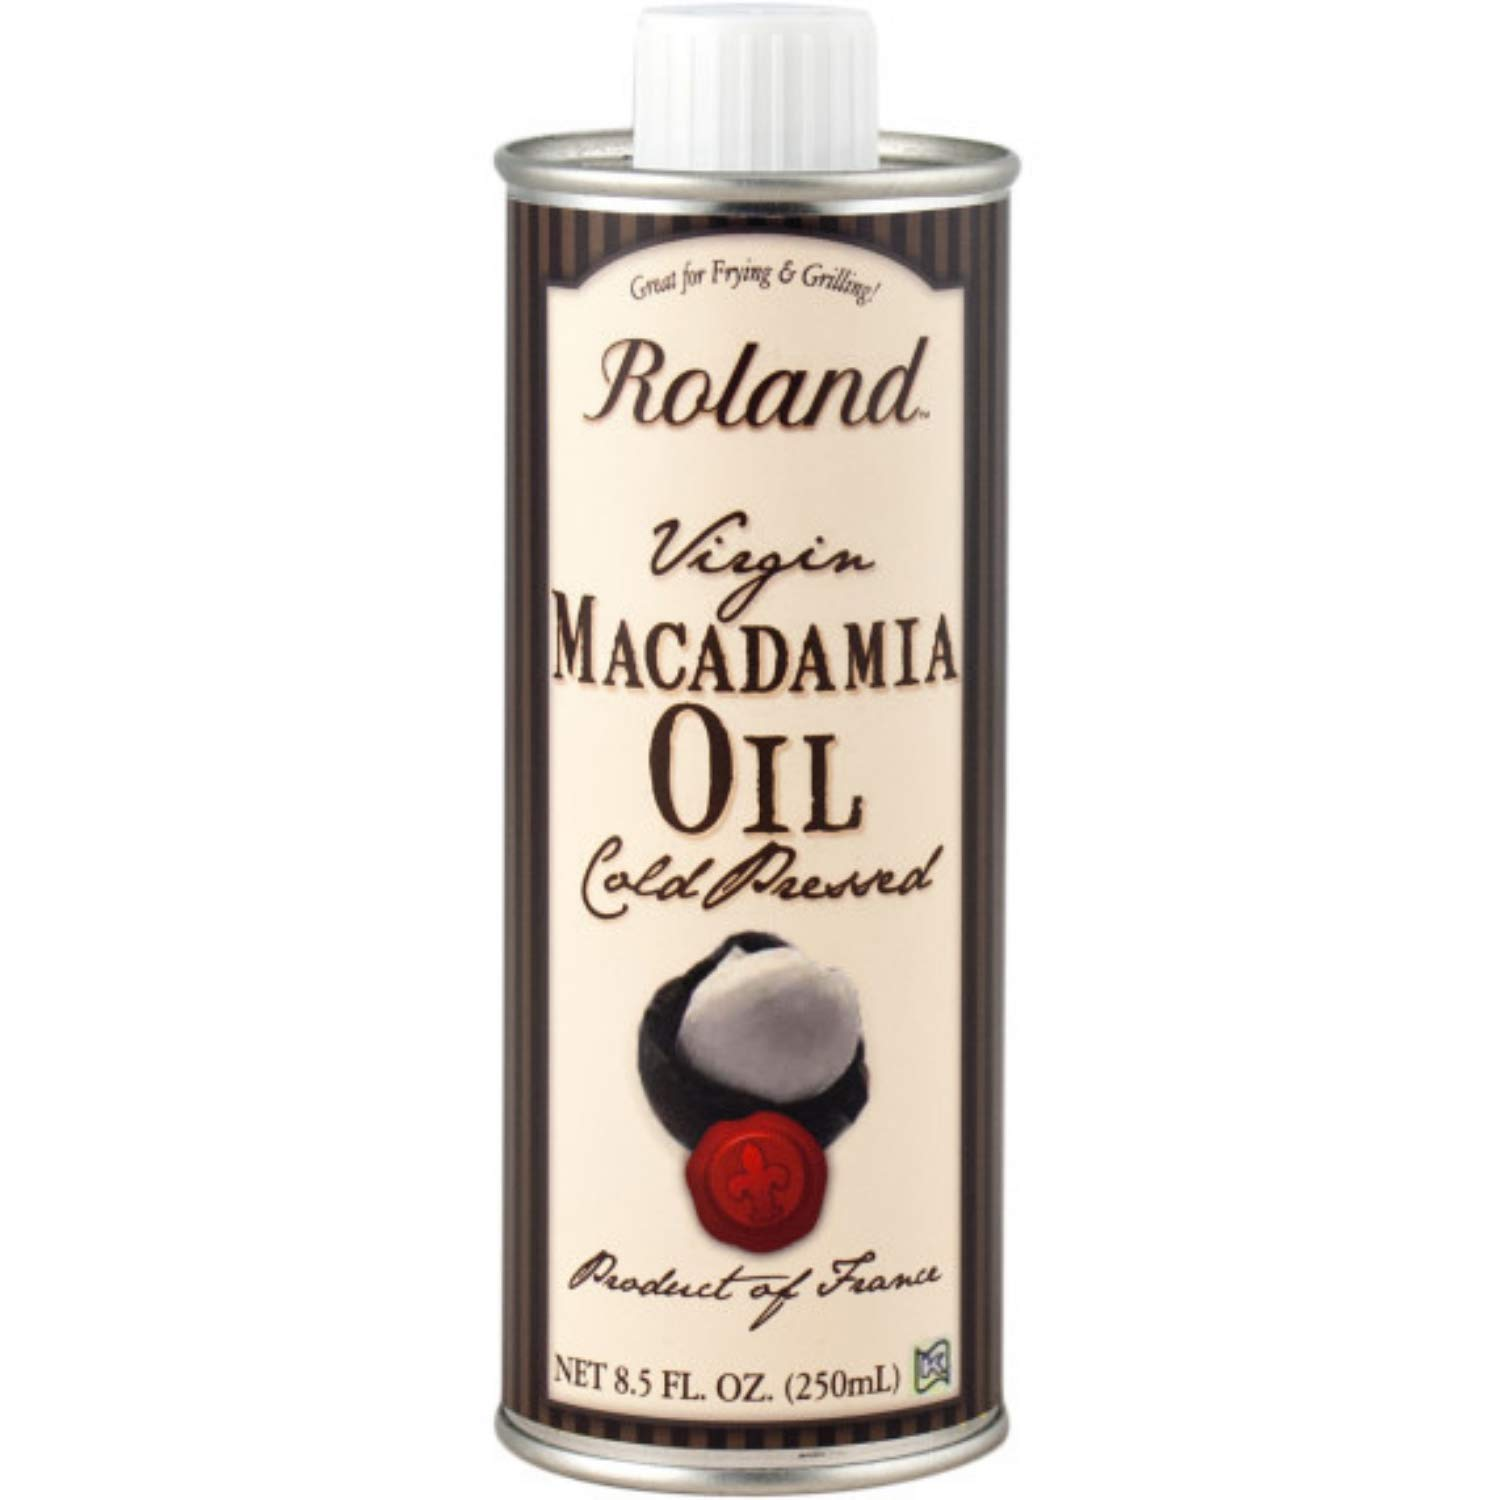 Roland Foods Virgin Macadamia Oil, Cold Pressed, Specialty Imported Food, 8.5 Fl Oz Can